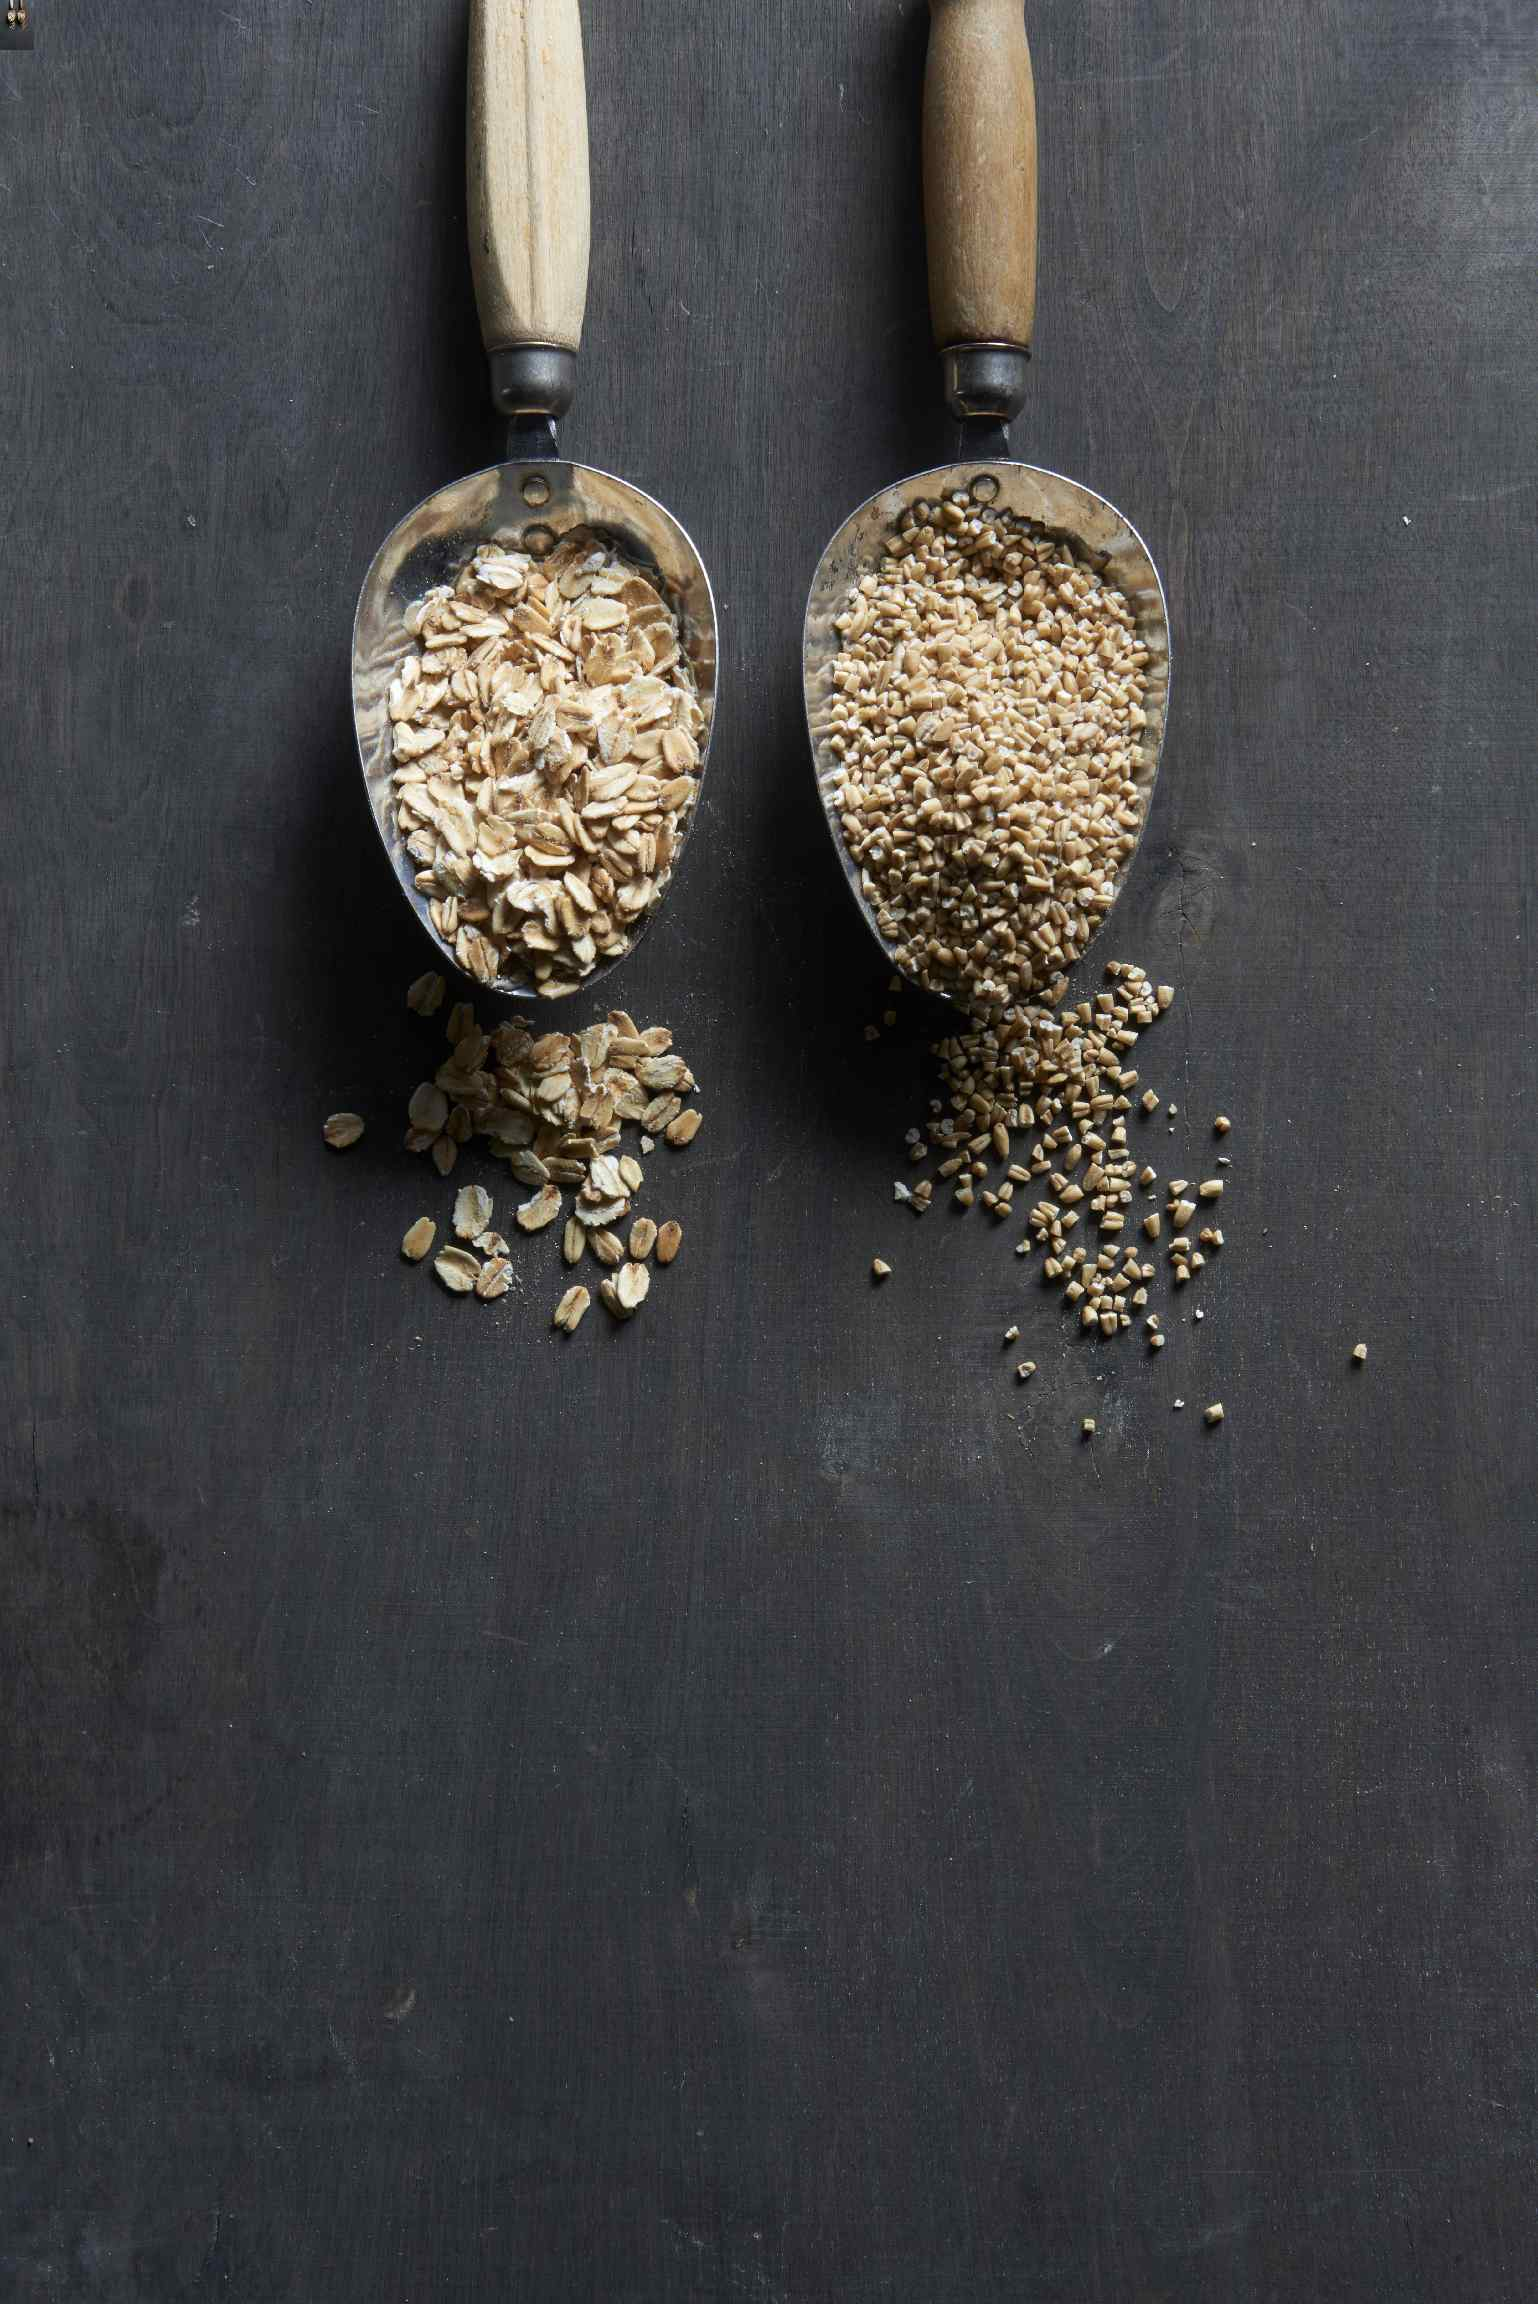 Scoops of rolled oats and steel-cut oats in metal scoops with wooden handles, some oats spilling around the scoop